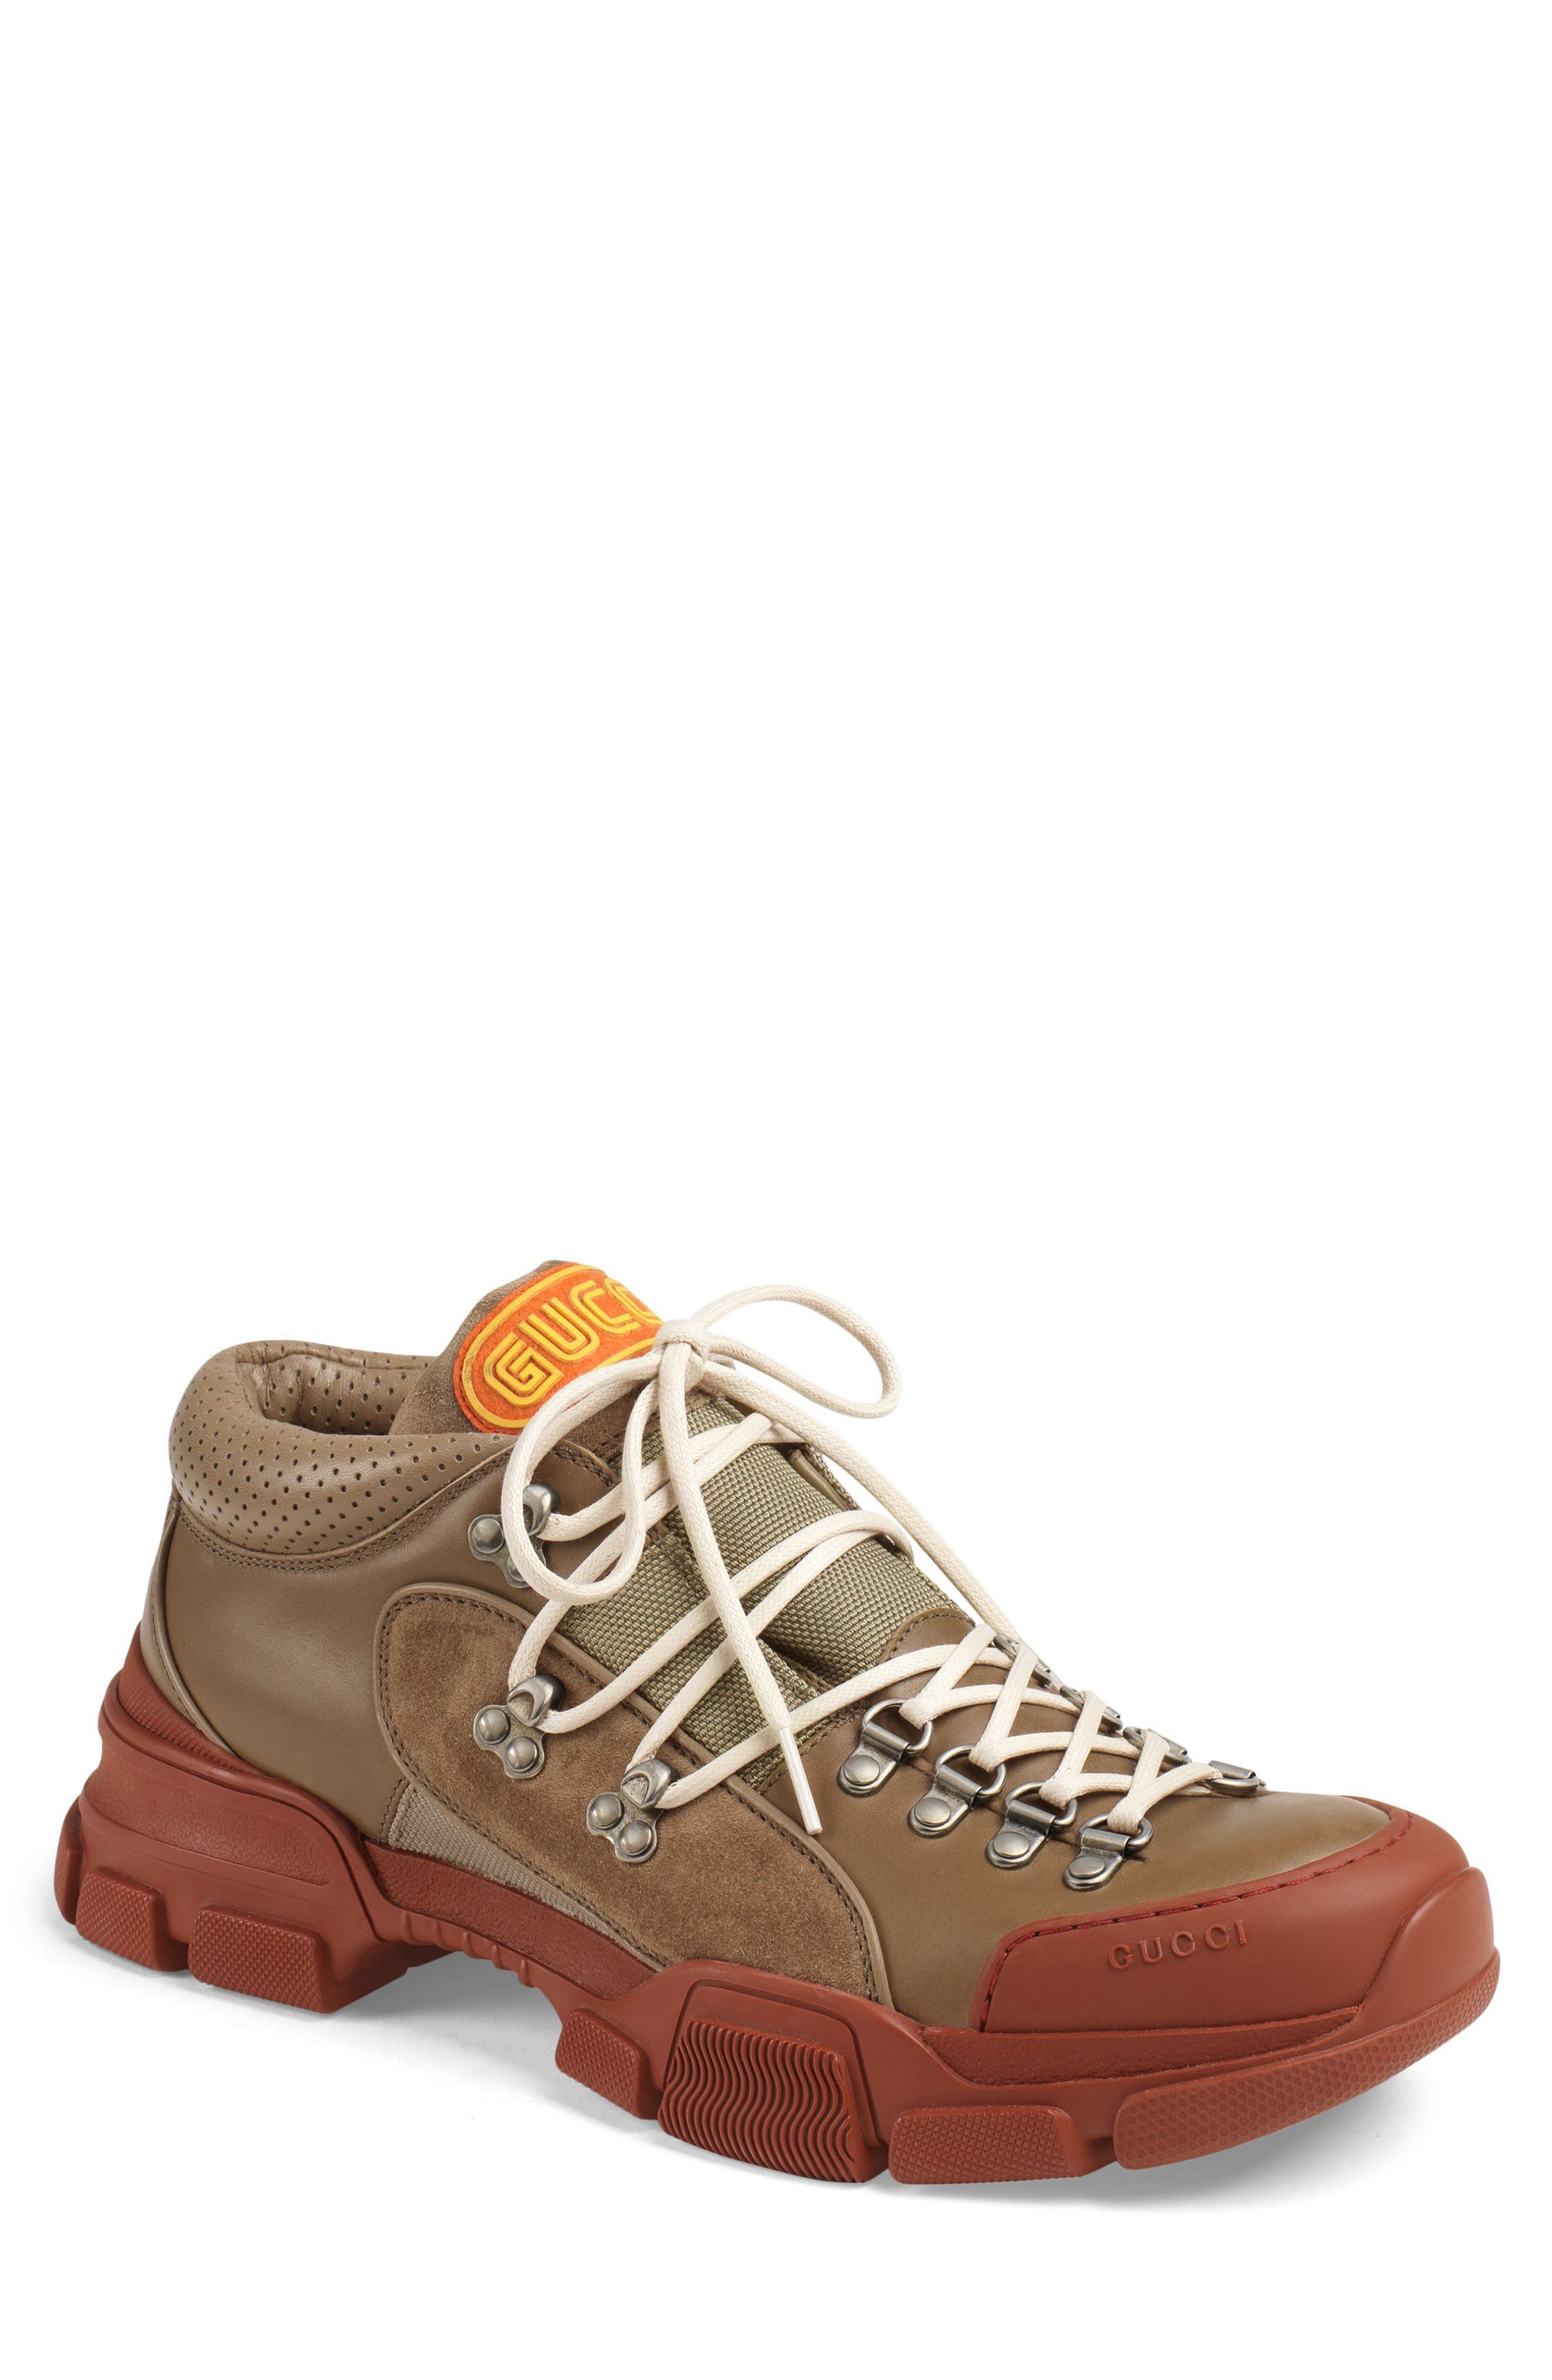 Gucci Leather & Original Gg Trekking Boot, Beige